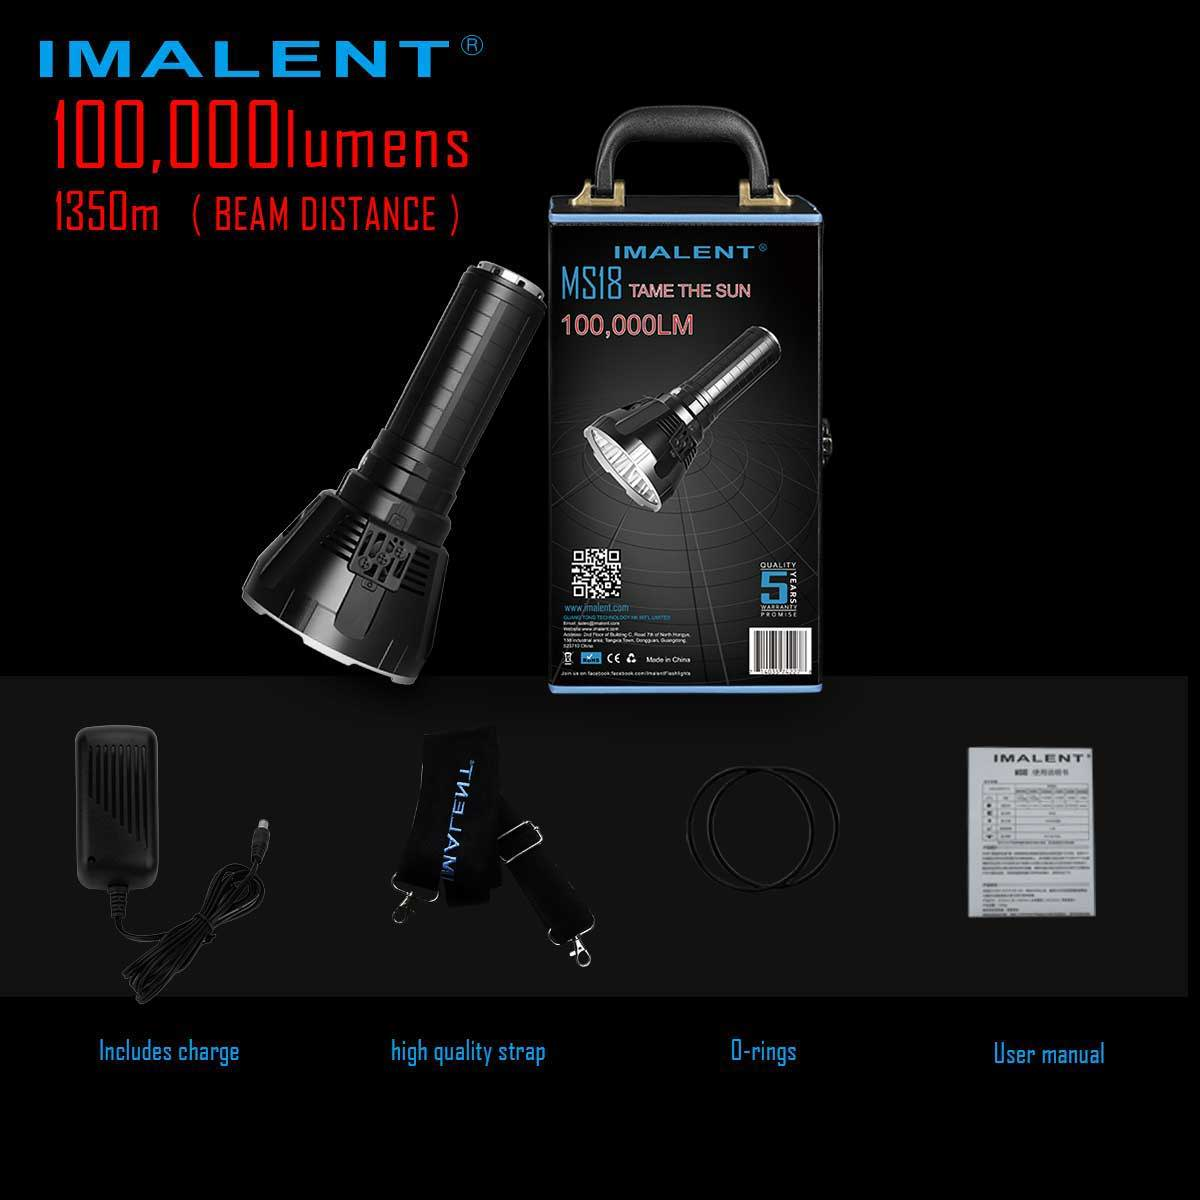 imalent ms18 package